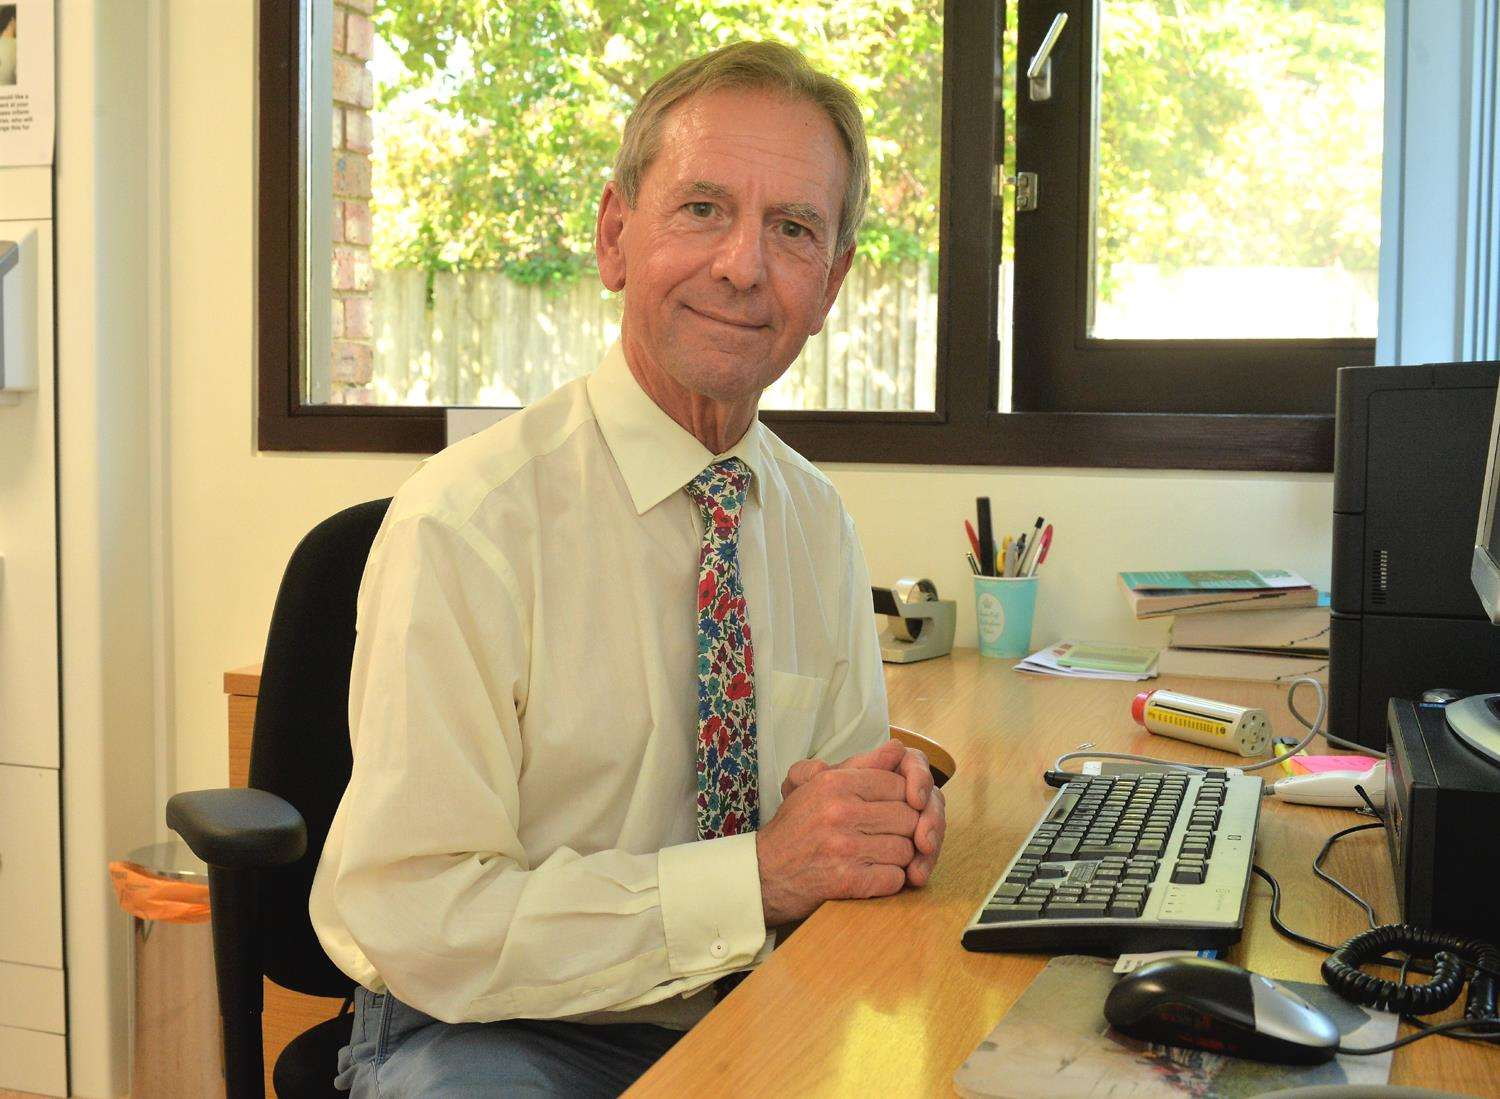 Dr Simon Bailey bids farewell to a career which has spanned more than four decades